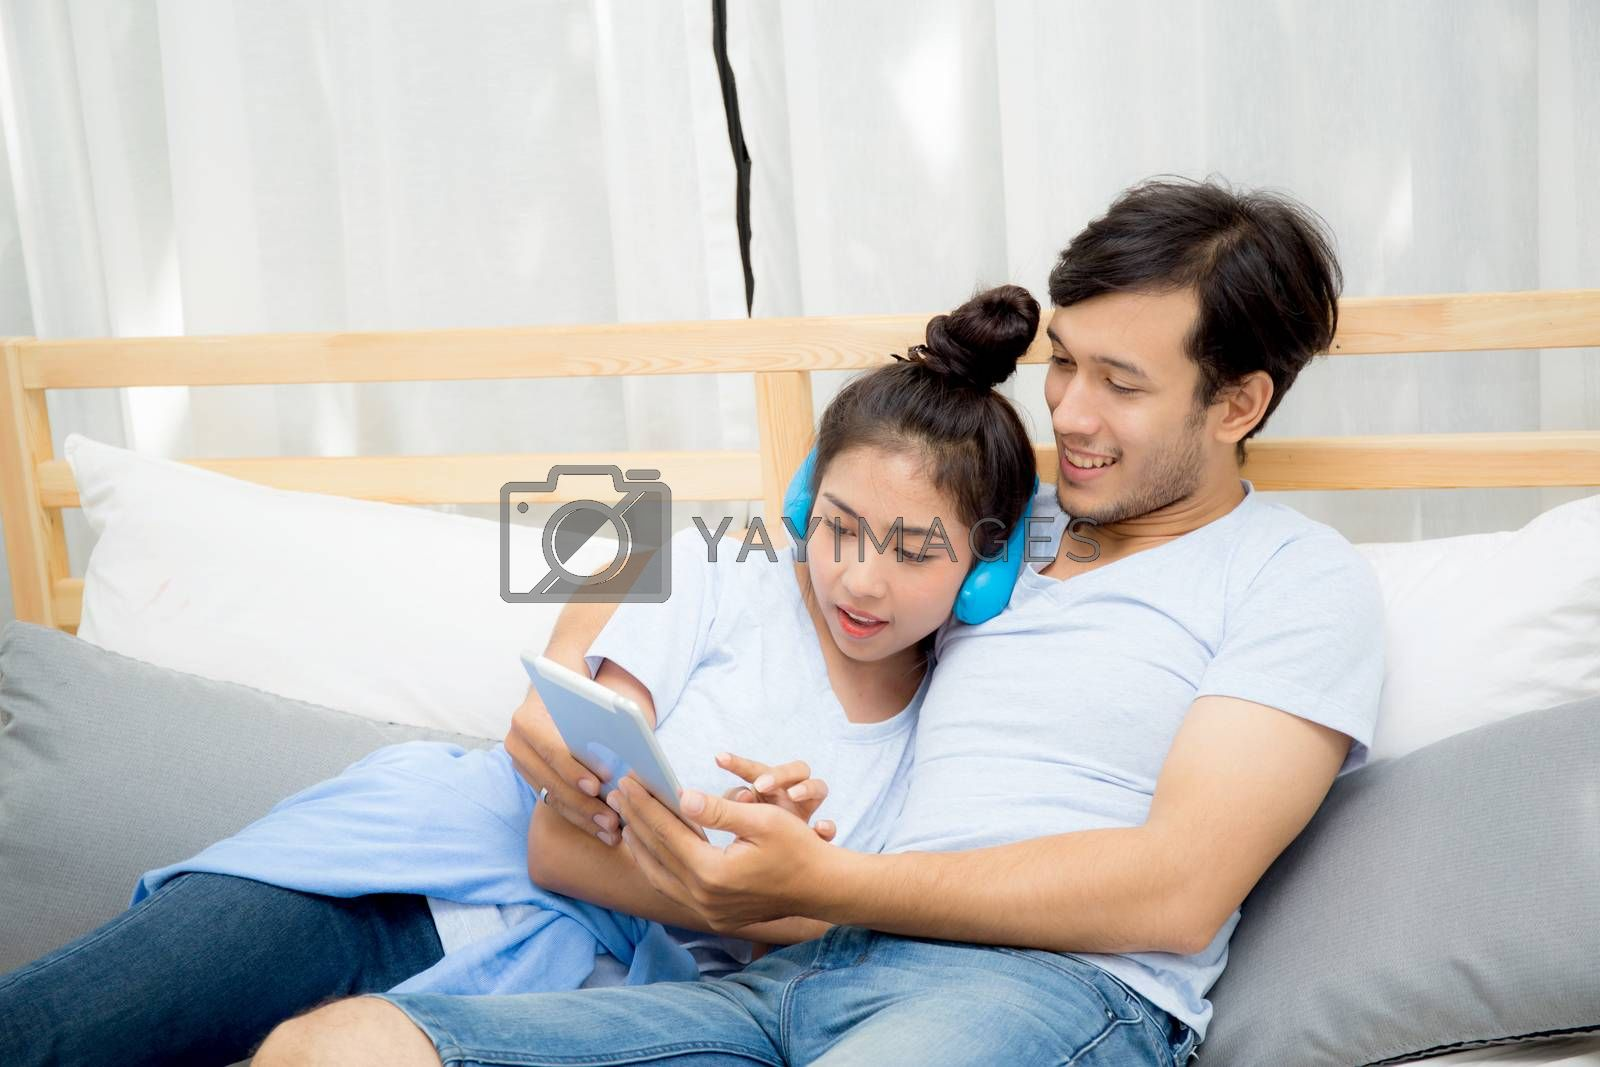 Beautiful asian young couple listening to music with tablet on bed, Love, dating,Young couple in sitting together in bed using a Tablet.